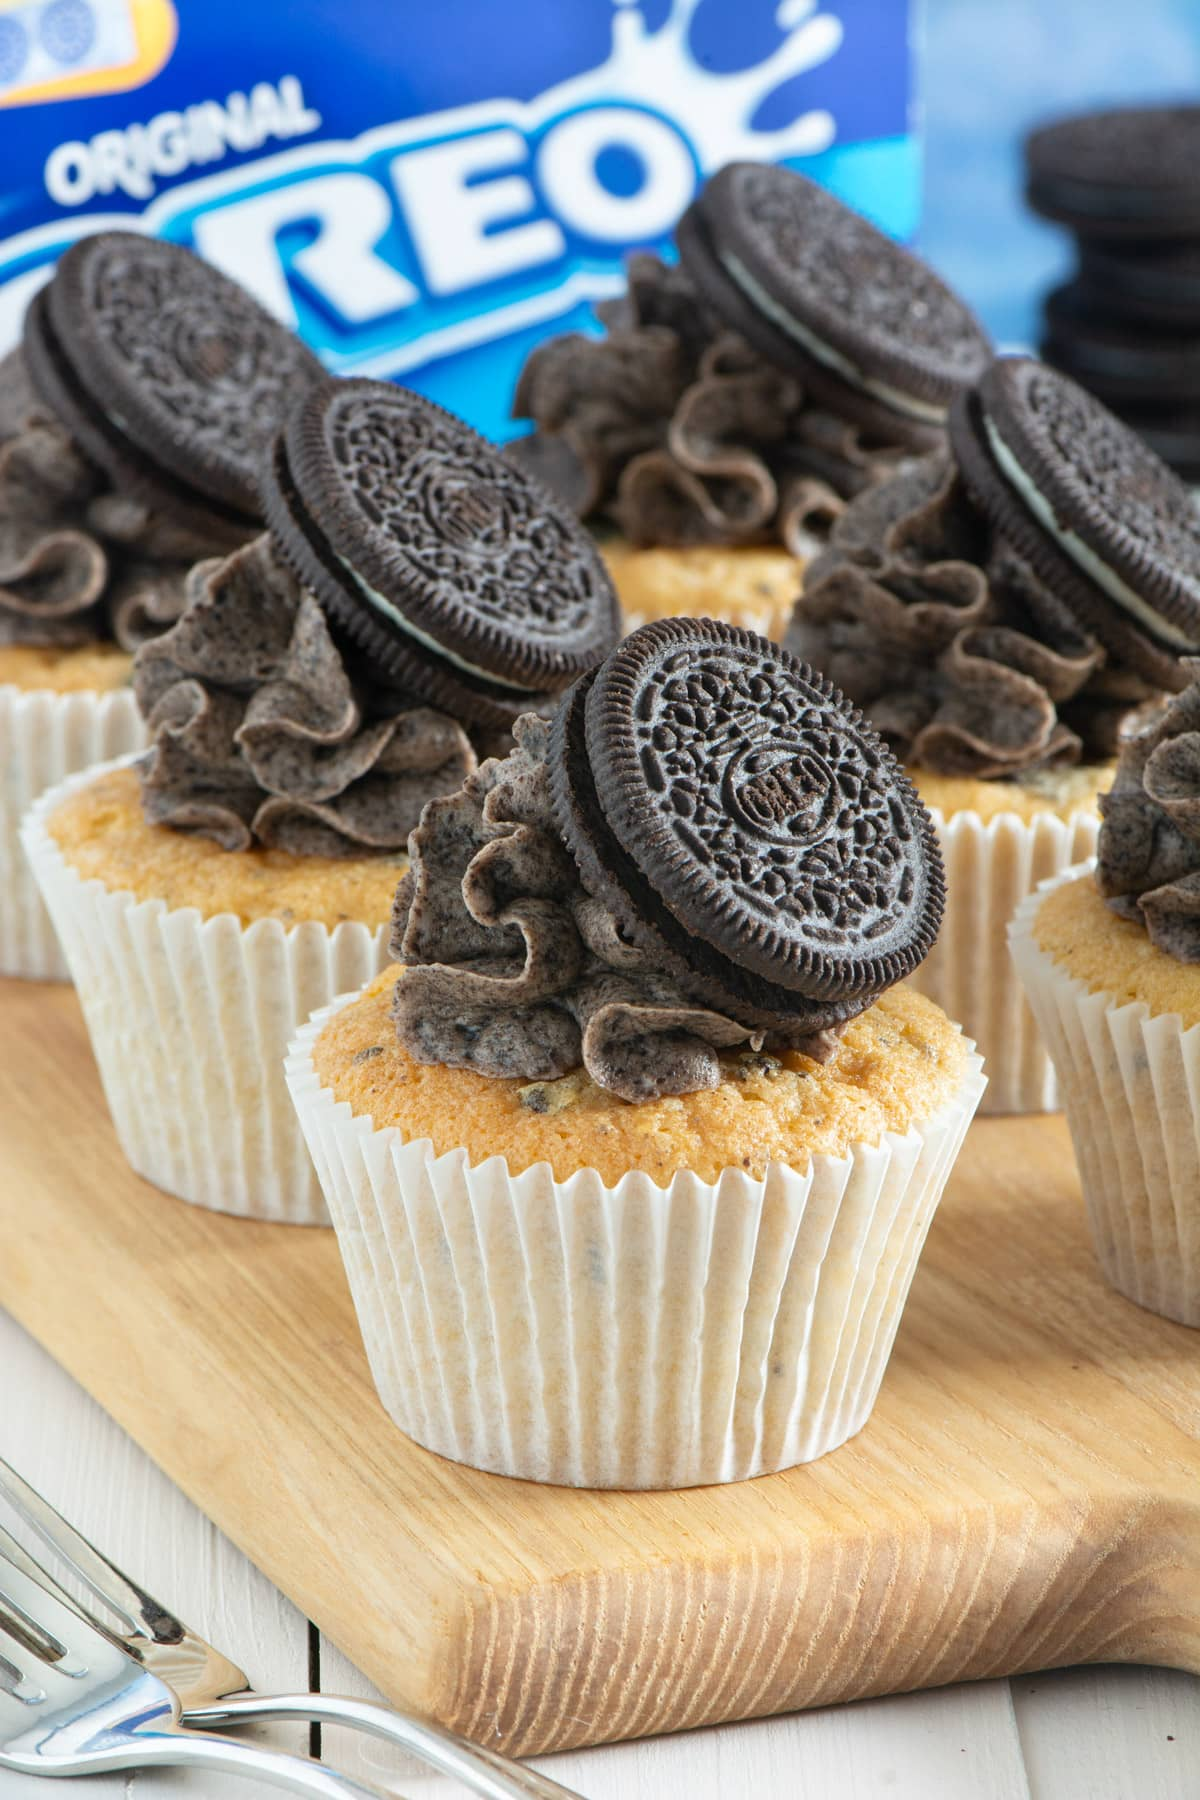 Decorated oreo cupcakes on a wooden board.